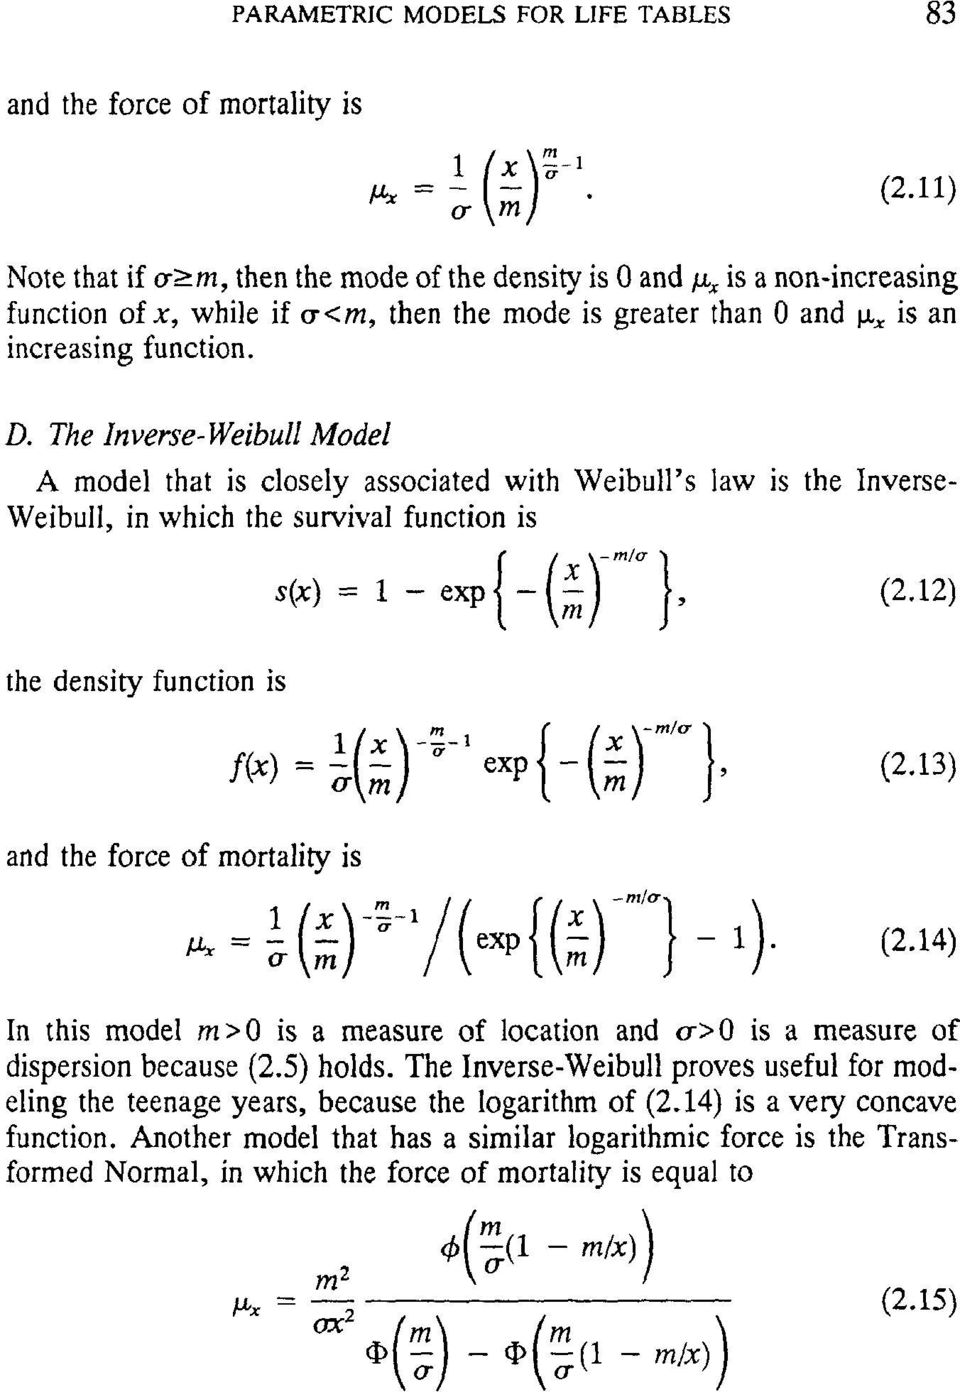 The lnverse-weibull Model A model that is closely associated with Weibull's law is the nverse- Weibull, in which the survival function is oxp{ (S }, the density function is f(x) = ~. ~ exp -, (2.